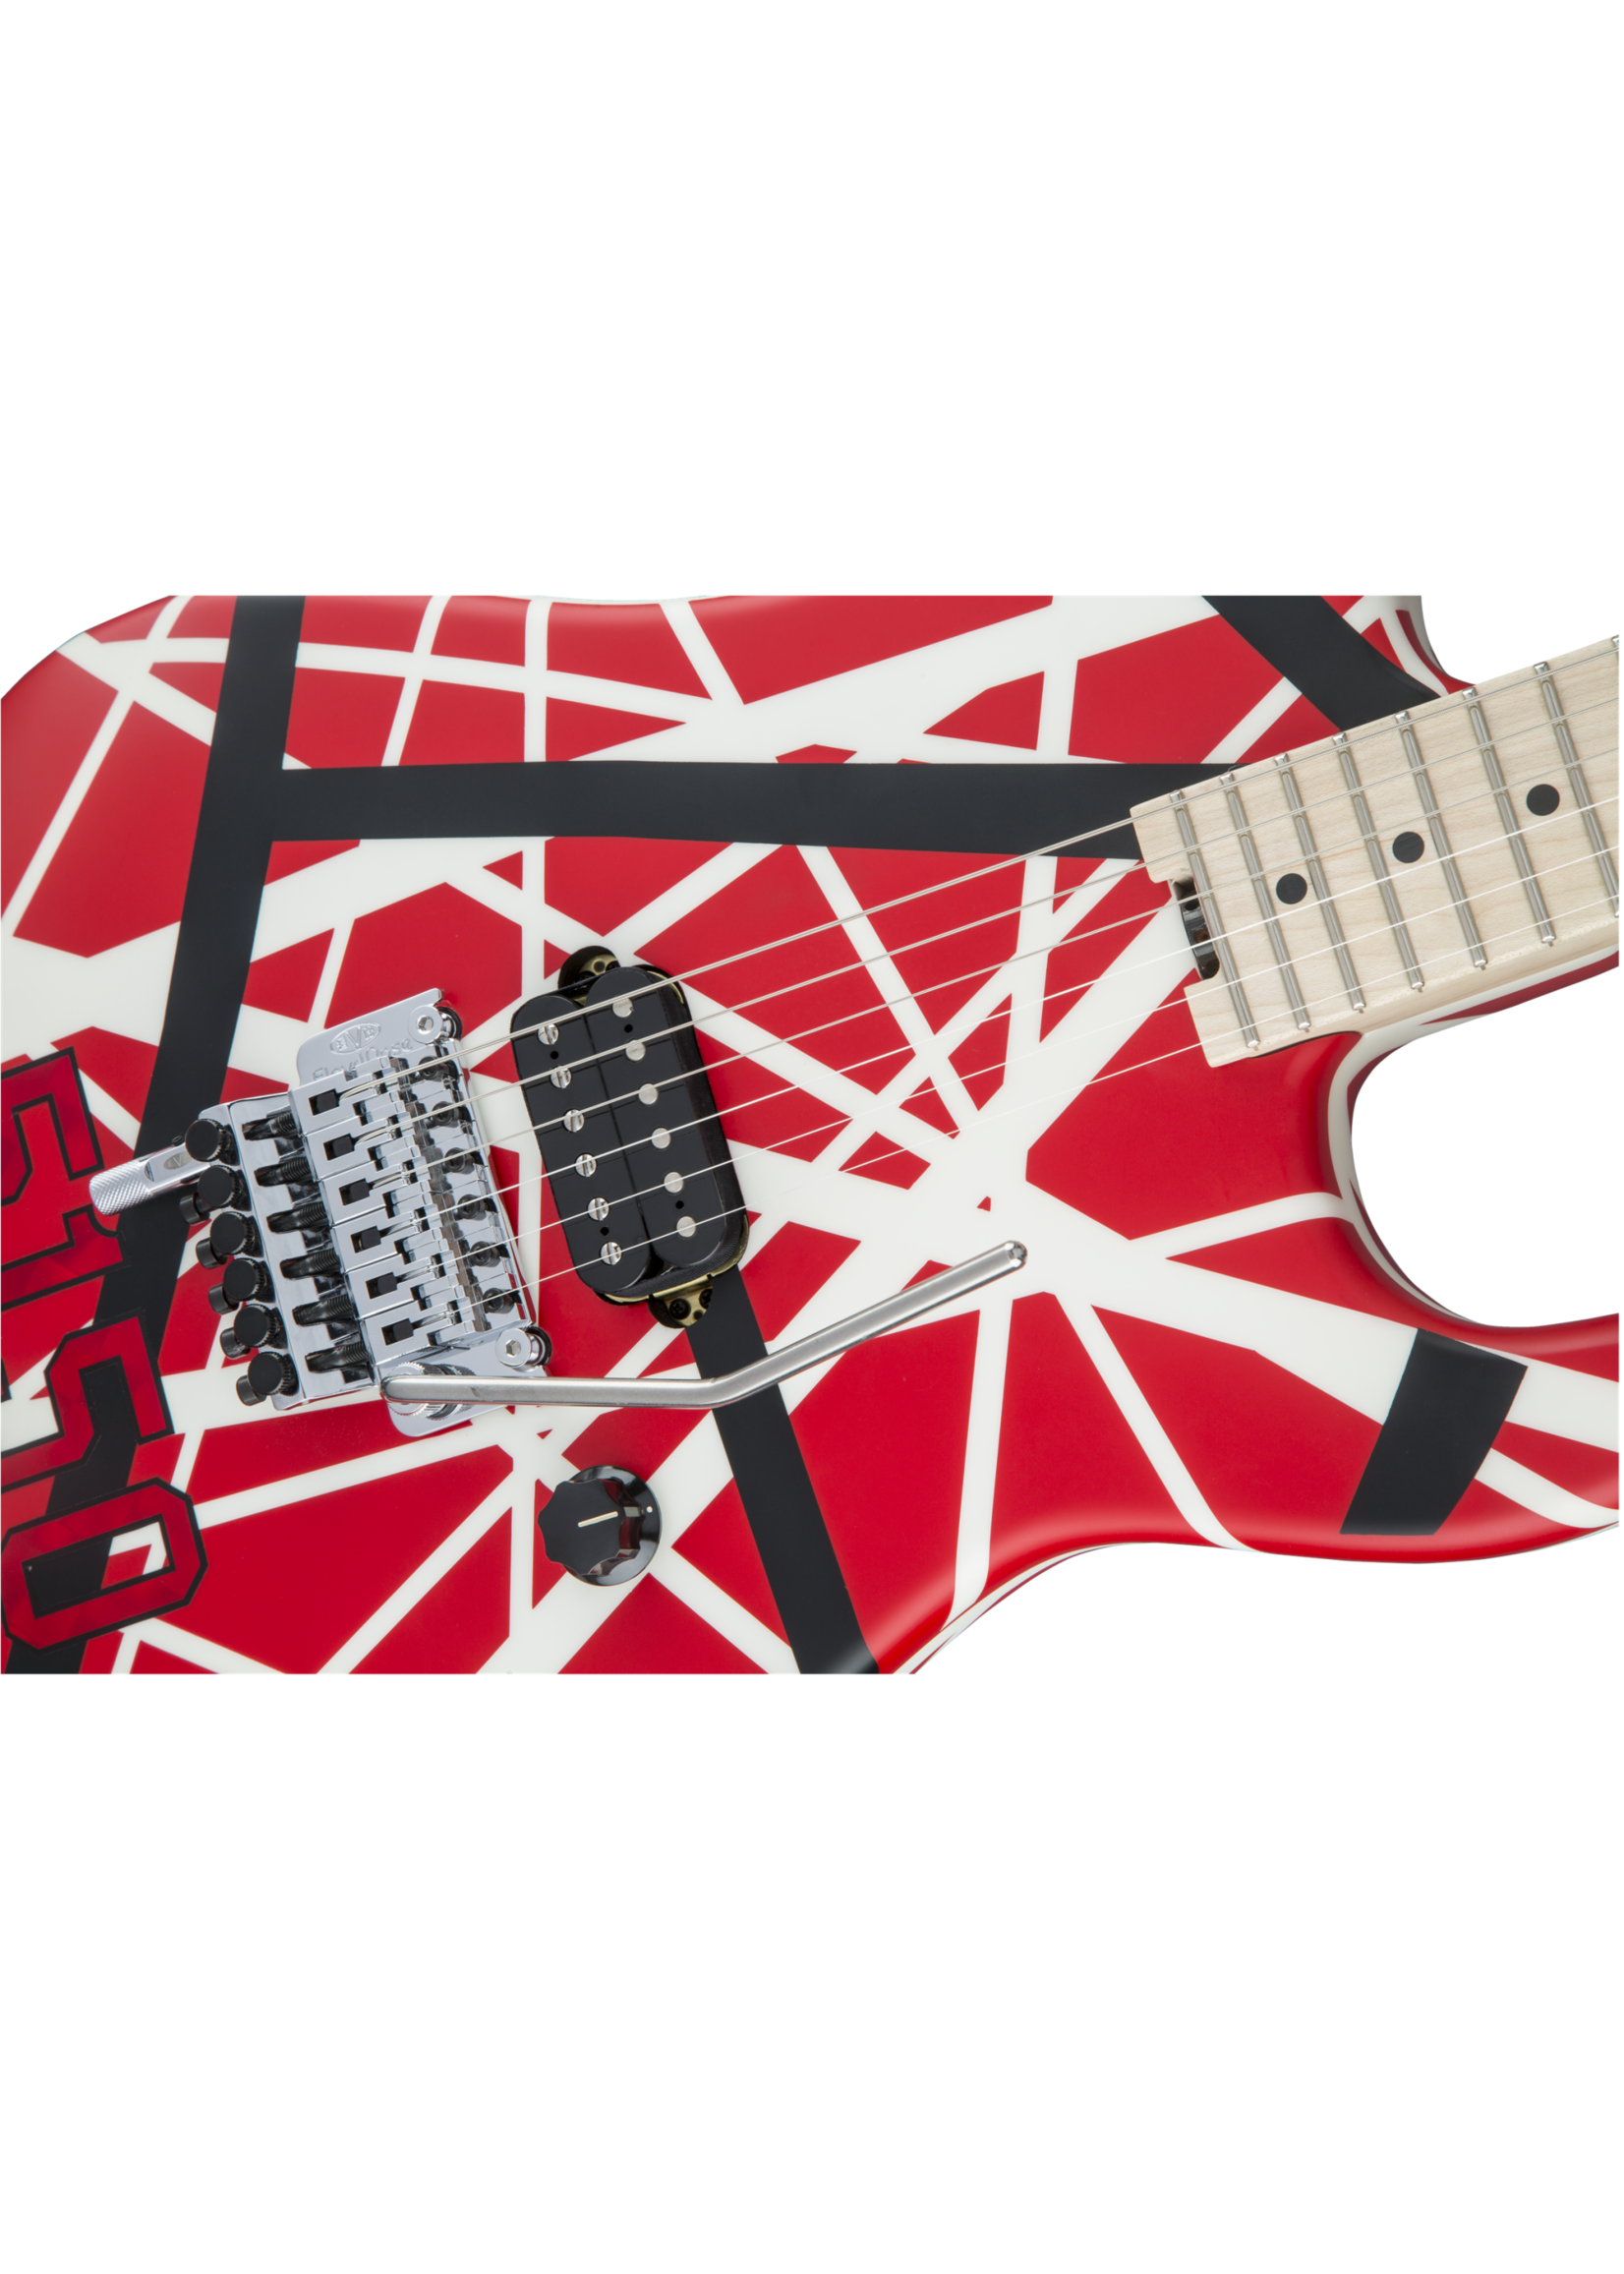 EVH EVH Striped Series 5150 Red with Black and White Stripes